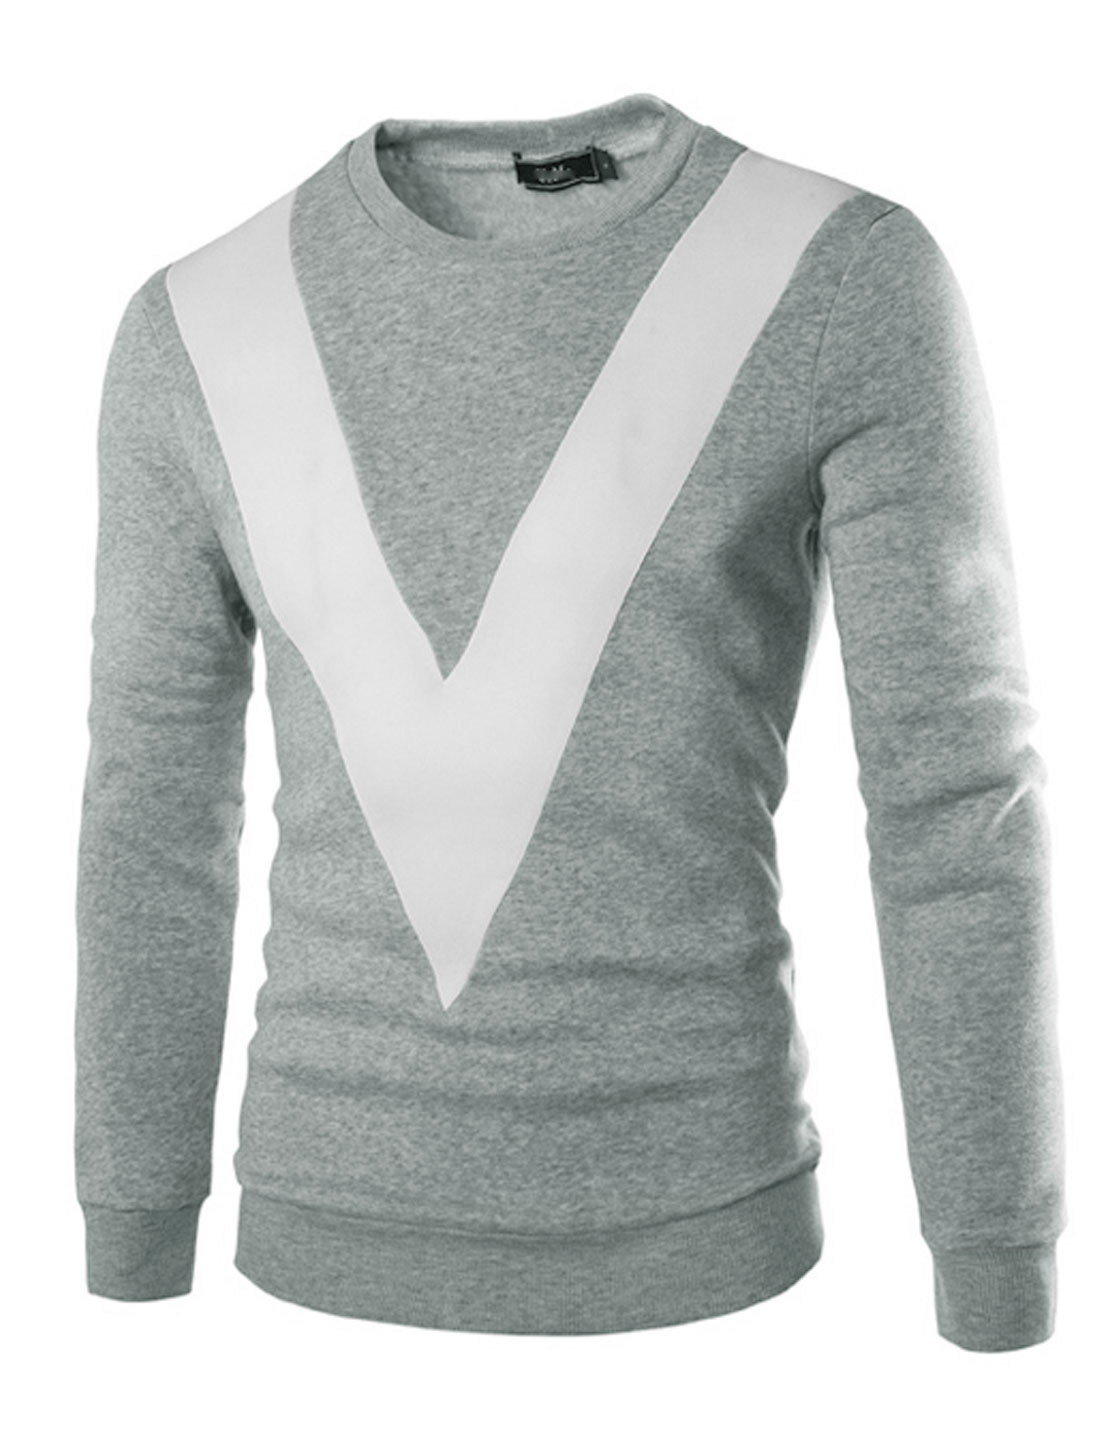 Man Contrast Color V-Shaped Panel Long Sleeves Sweatshirt Light Gray M